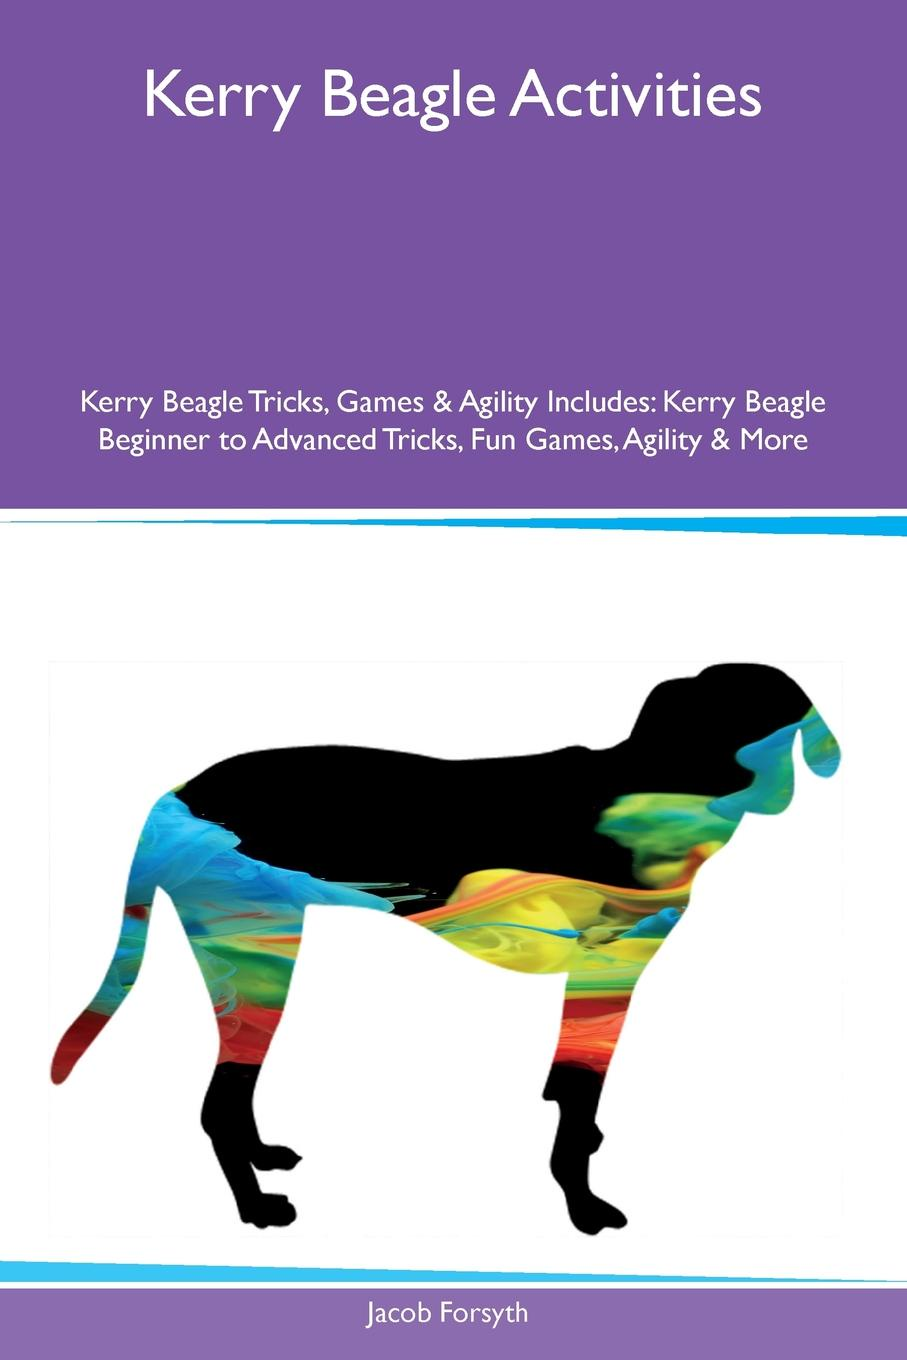 Jacob Forsyth Kerry Beagle Activities Tricks, Games & Agility Includes. Beginner to Advanced Fun Games, More